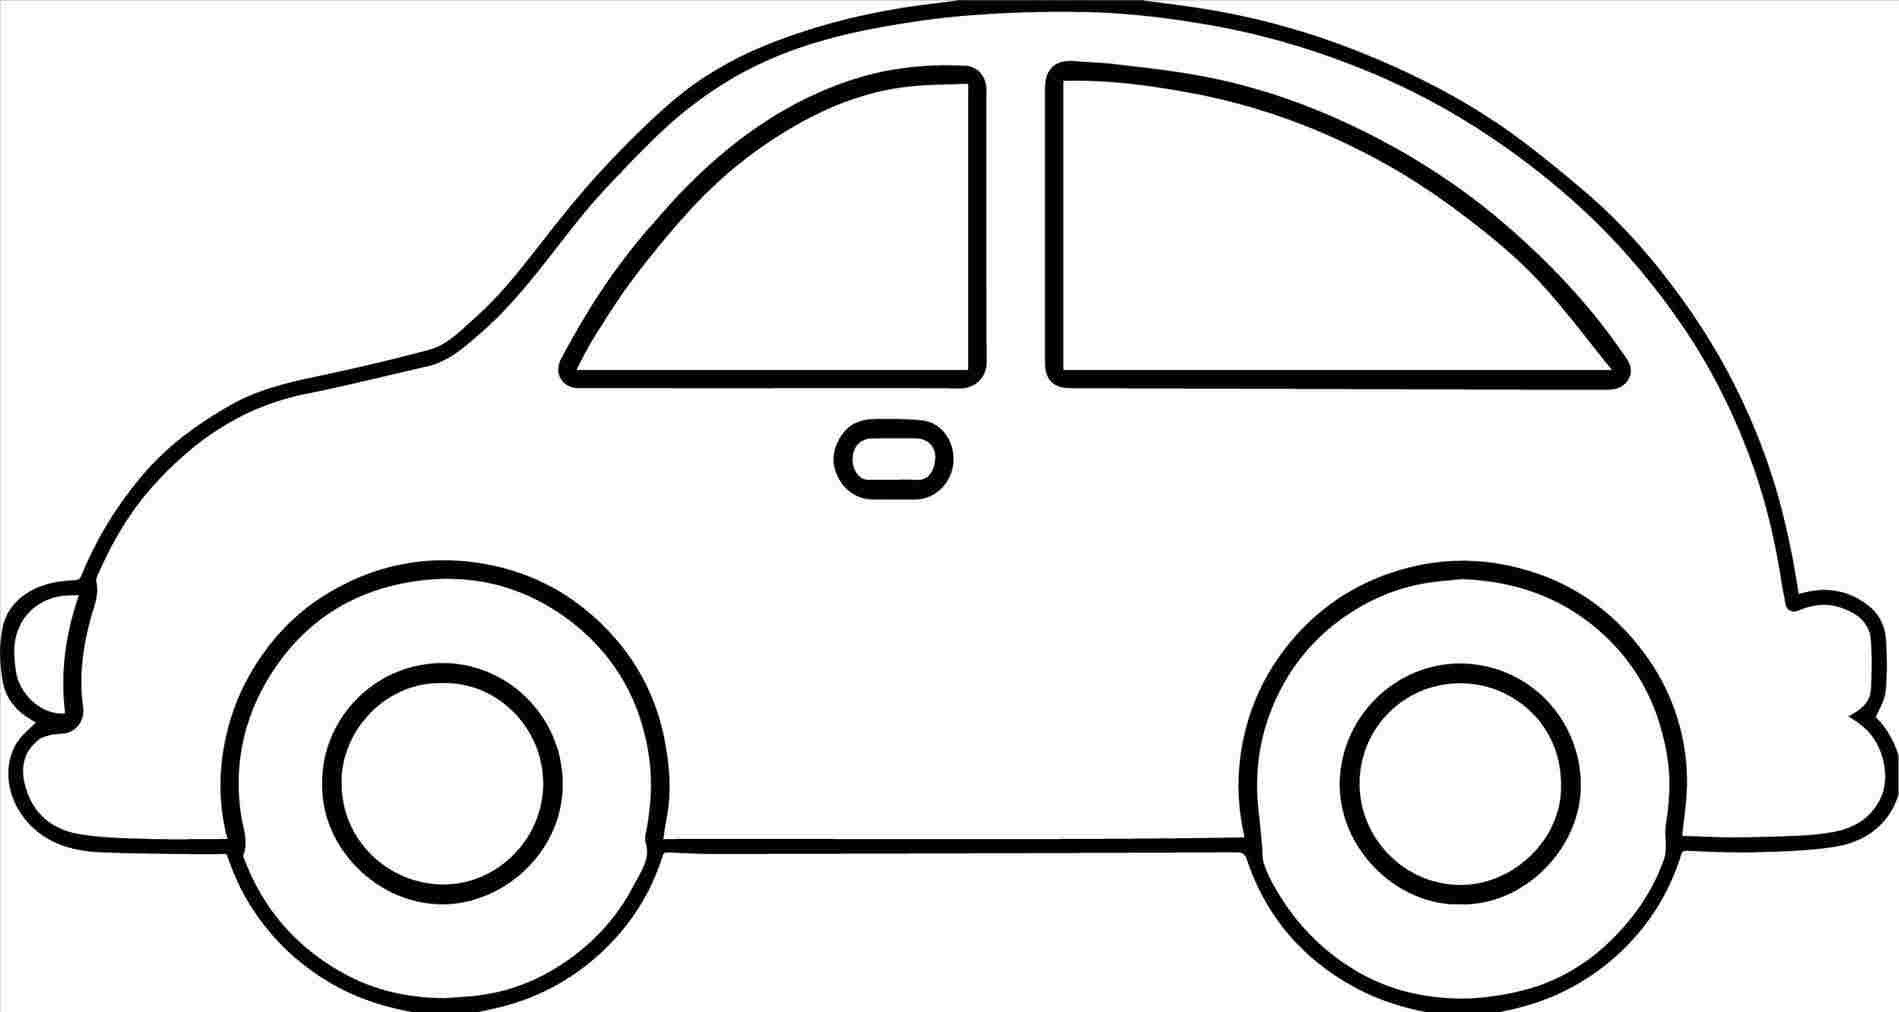 new how to draw a simple car  diagram  wiringdiagram  diagramming  diagramm  visuals